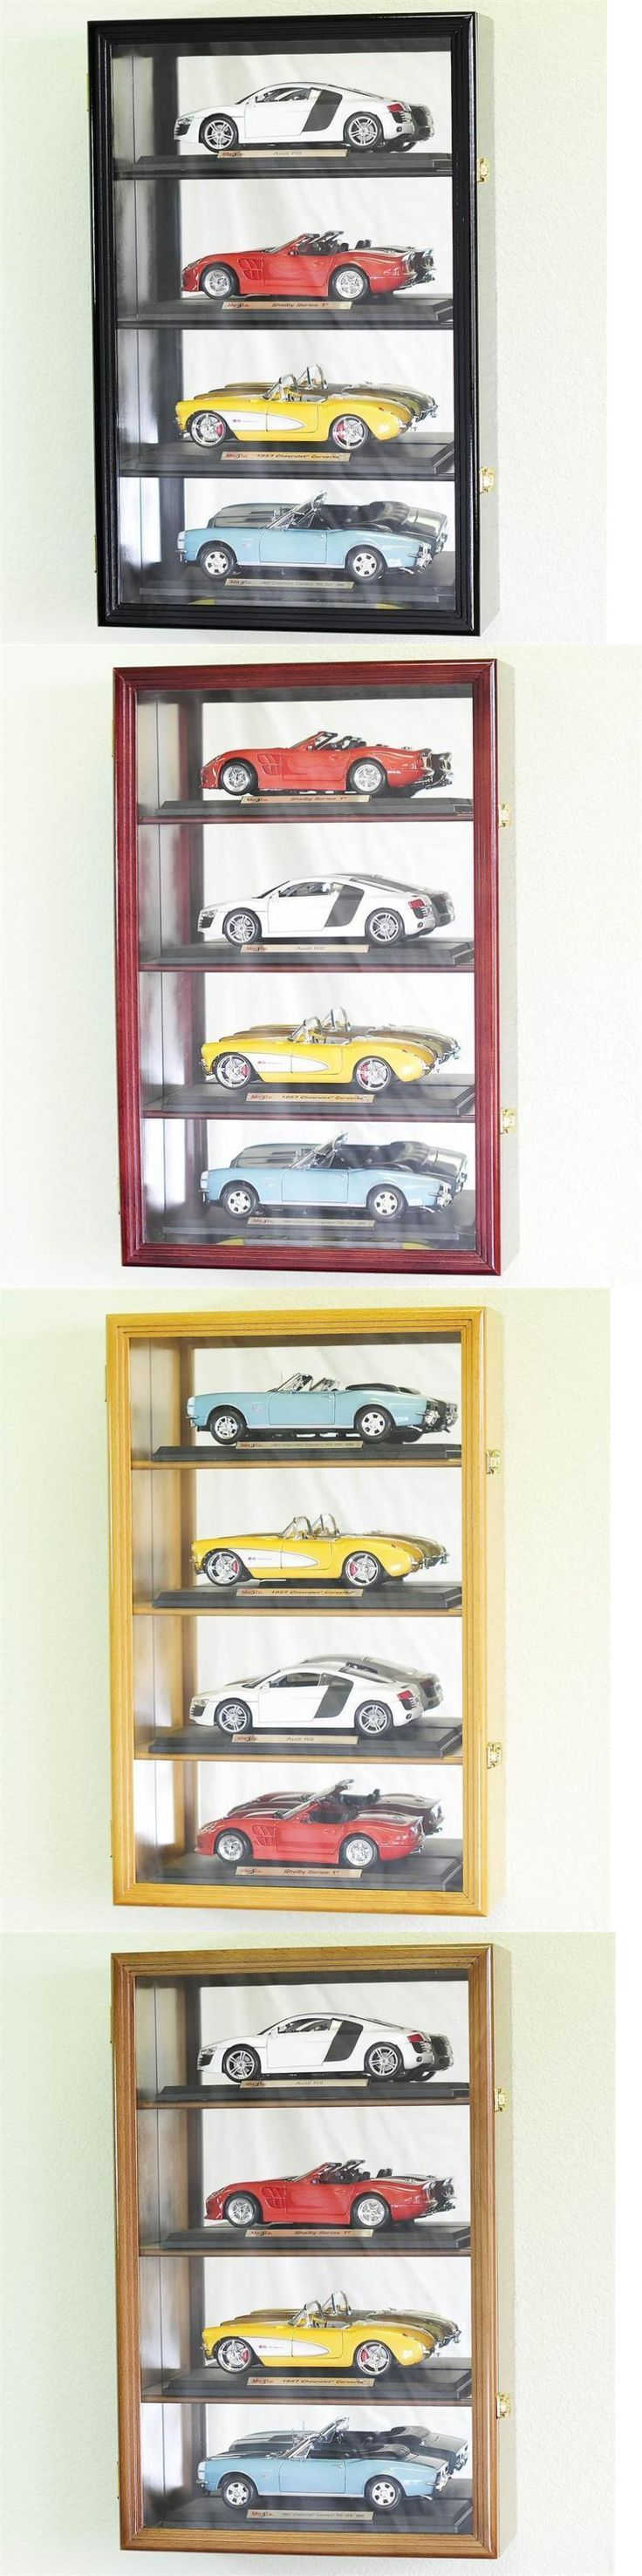 Shadow Boxes 41512: 1:18 Scale Diecast Car Model Display Case Rack Holds 4 * Led Lights * 98% Uv -> BUY IT NOW ONLY: $134.99 on eBay!